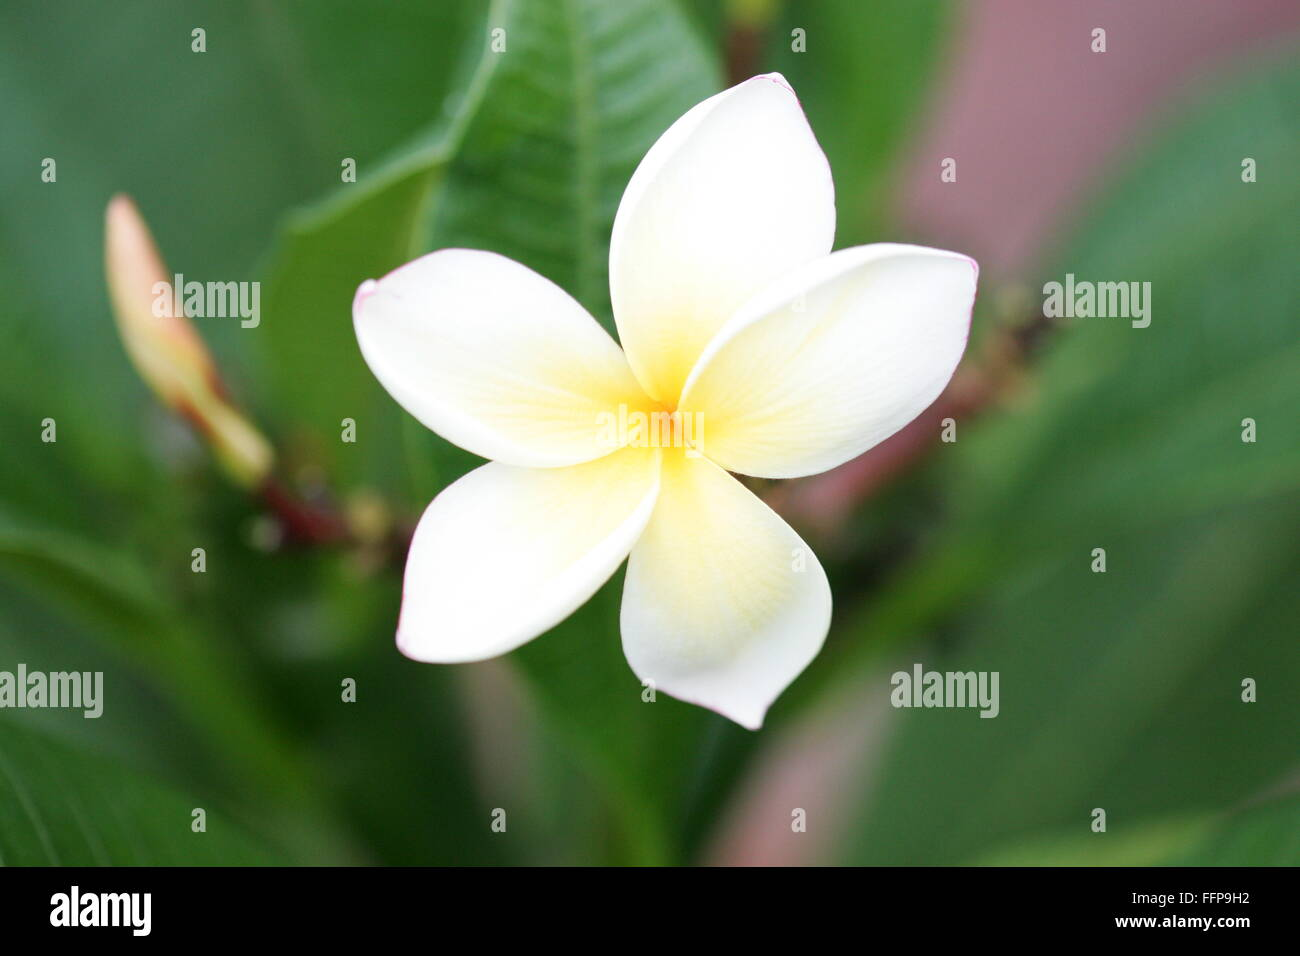 Ontario flower stock photos ontario flower stock images alamy plumeria flower stock image izmirmasajfo